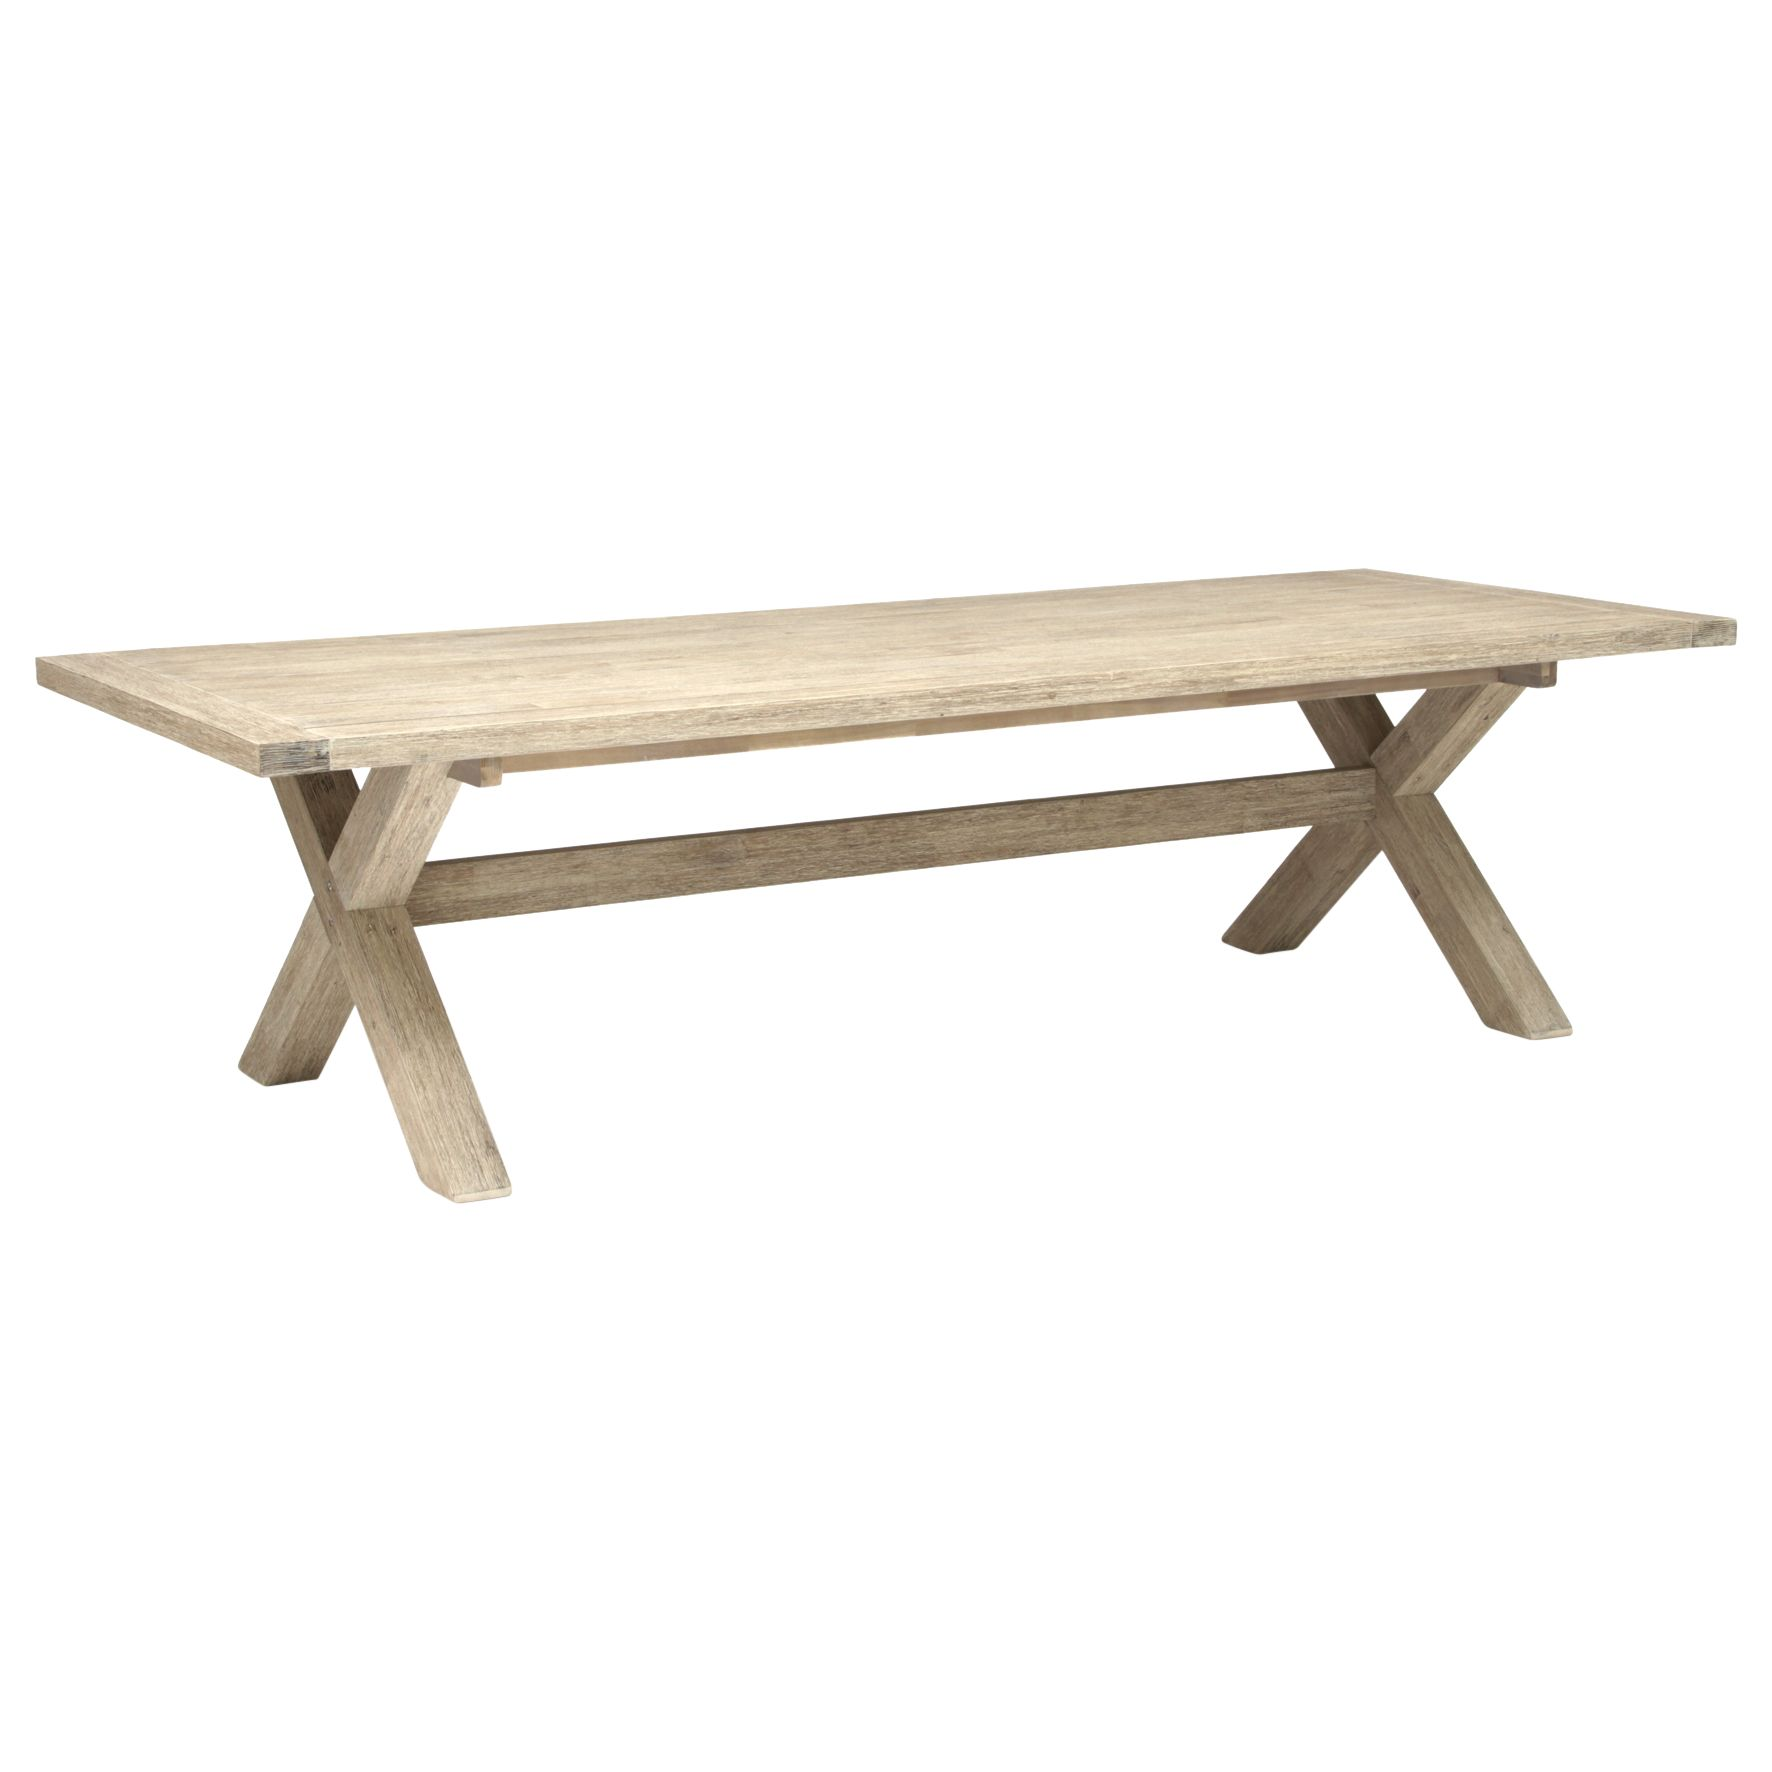 Kettler KETTLER Cora 10 Seater Rectangle Garden Table, FSC-Certified (Acacia), Smoke White